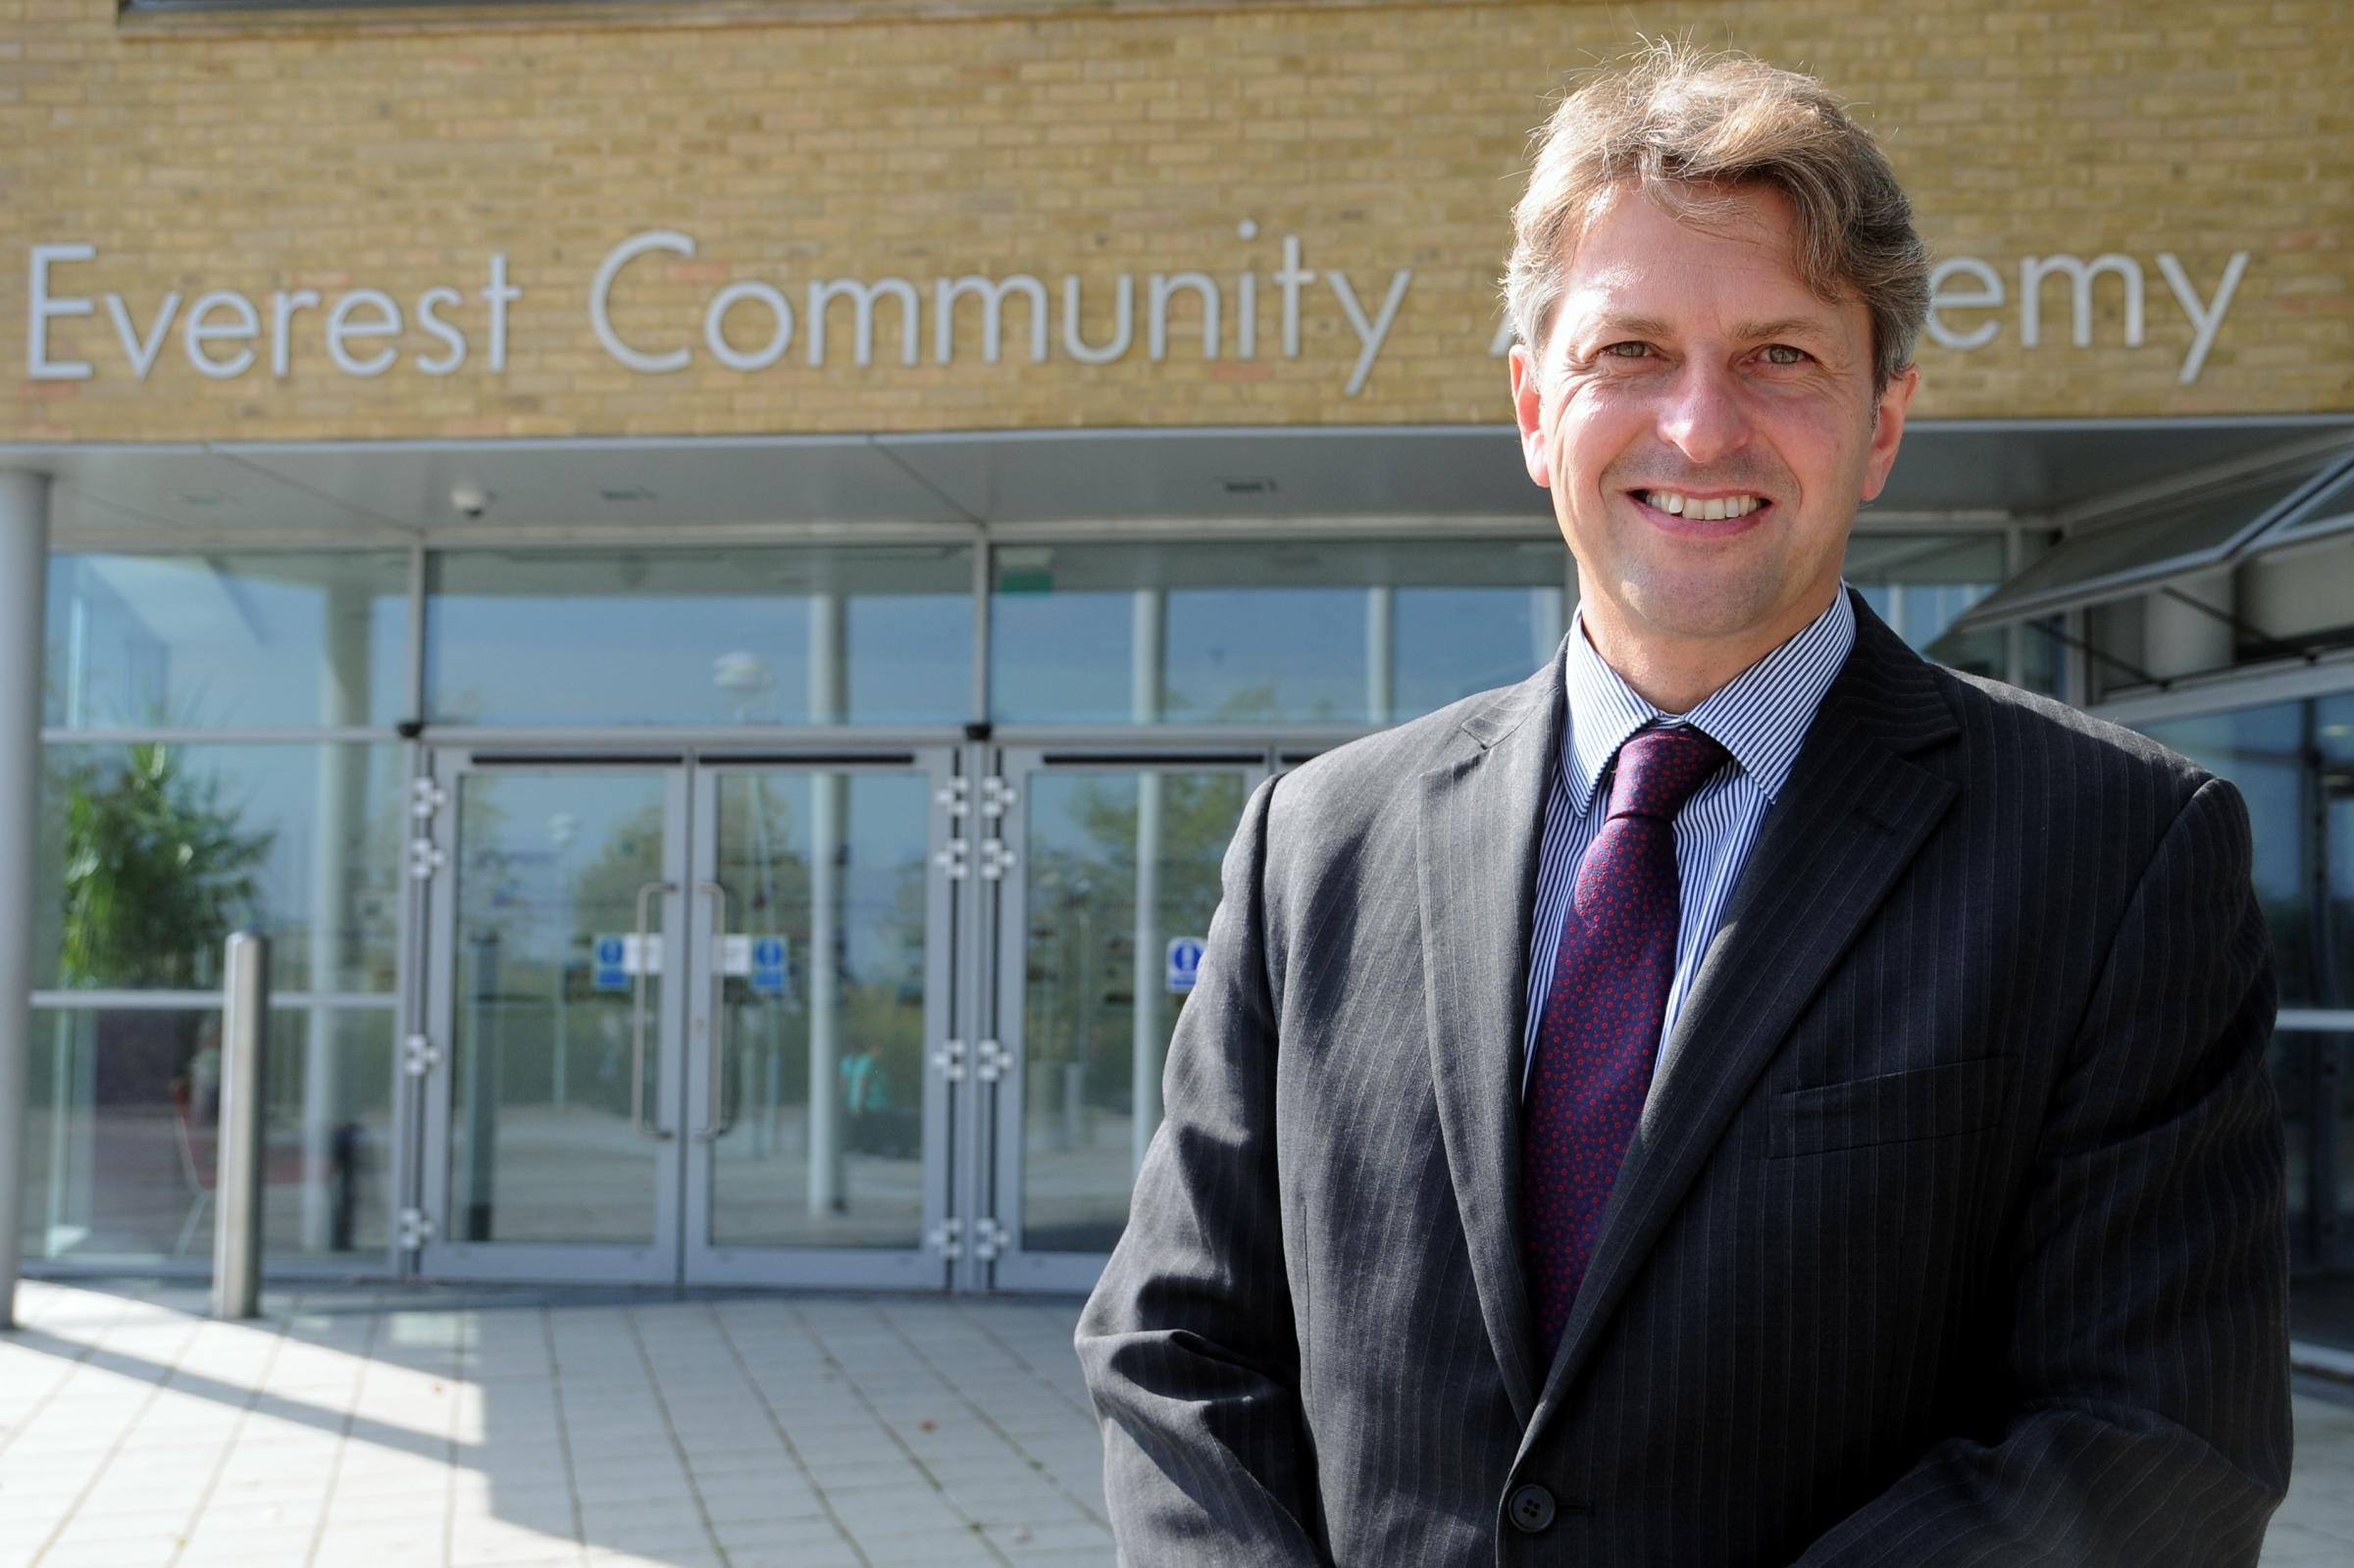 Nick Price, headteacher at Everest Community Academy